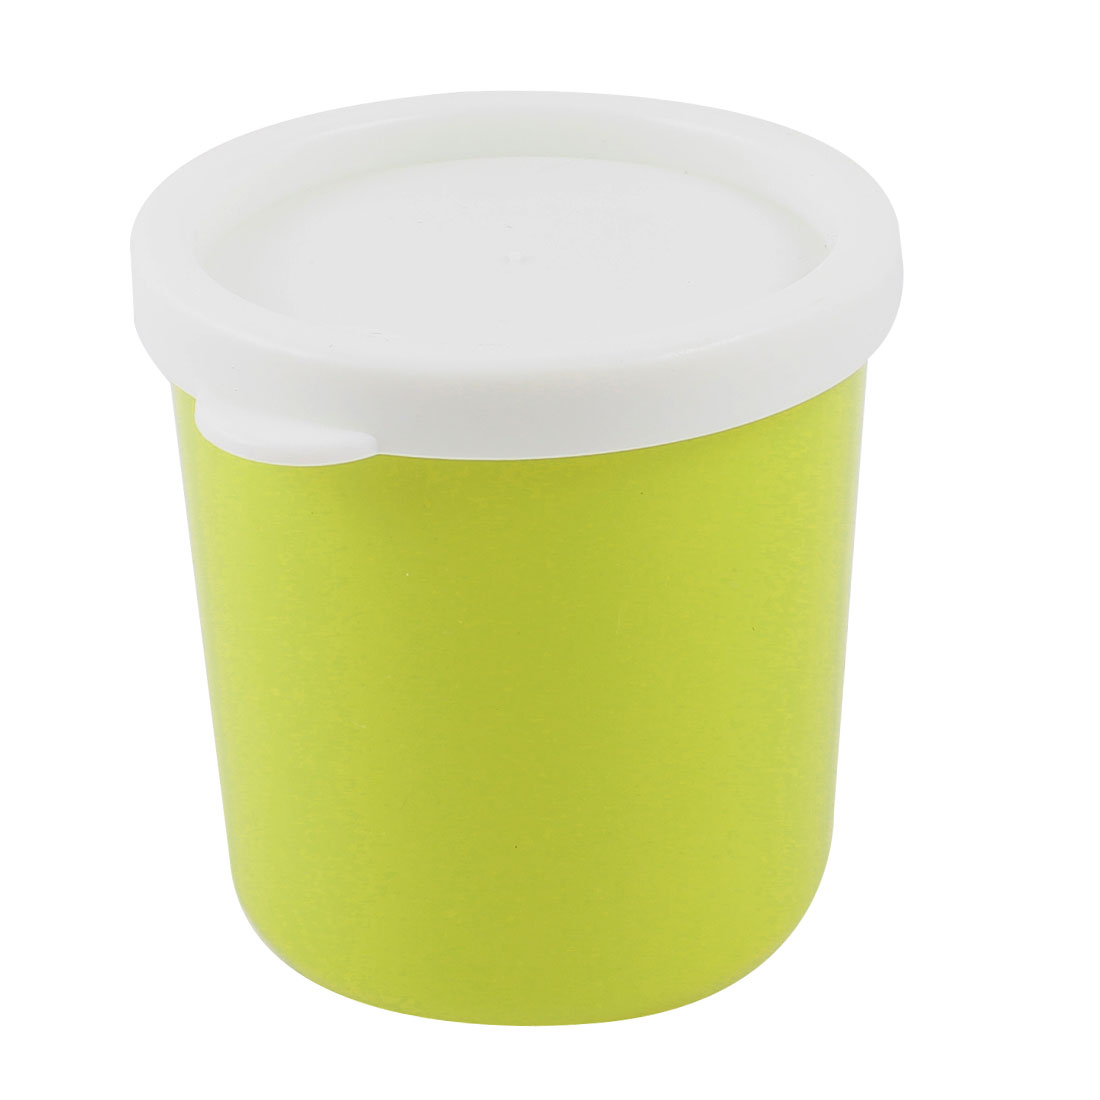 Round Yellow Green Plastic Nonslip 210ml Water Drinking Cup Mug w Lid